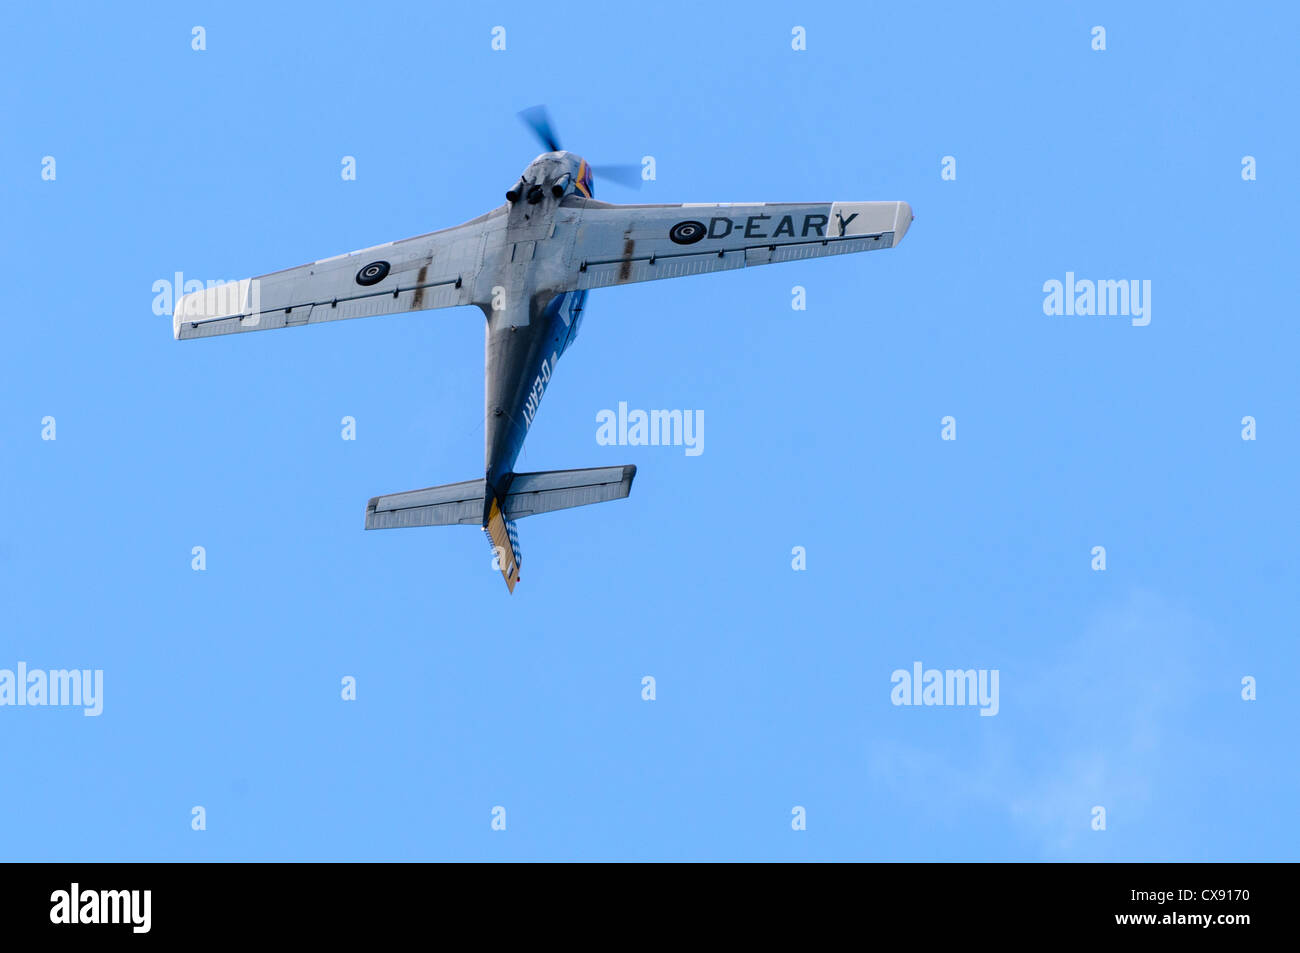 Italian Piaggio Aero P-149D airplane (D-EARY) pulling a loop-the-loop Stock Photo